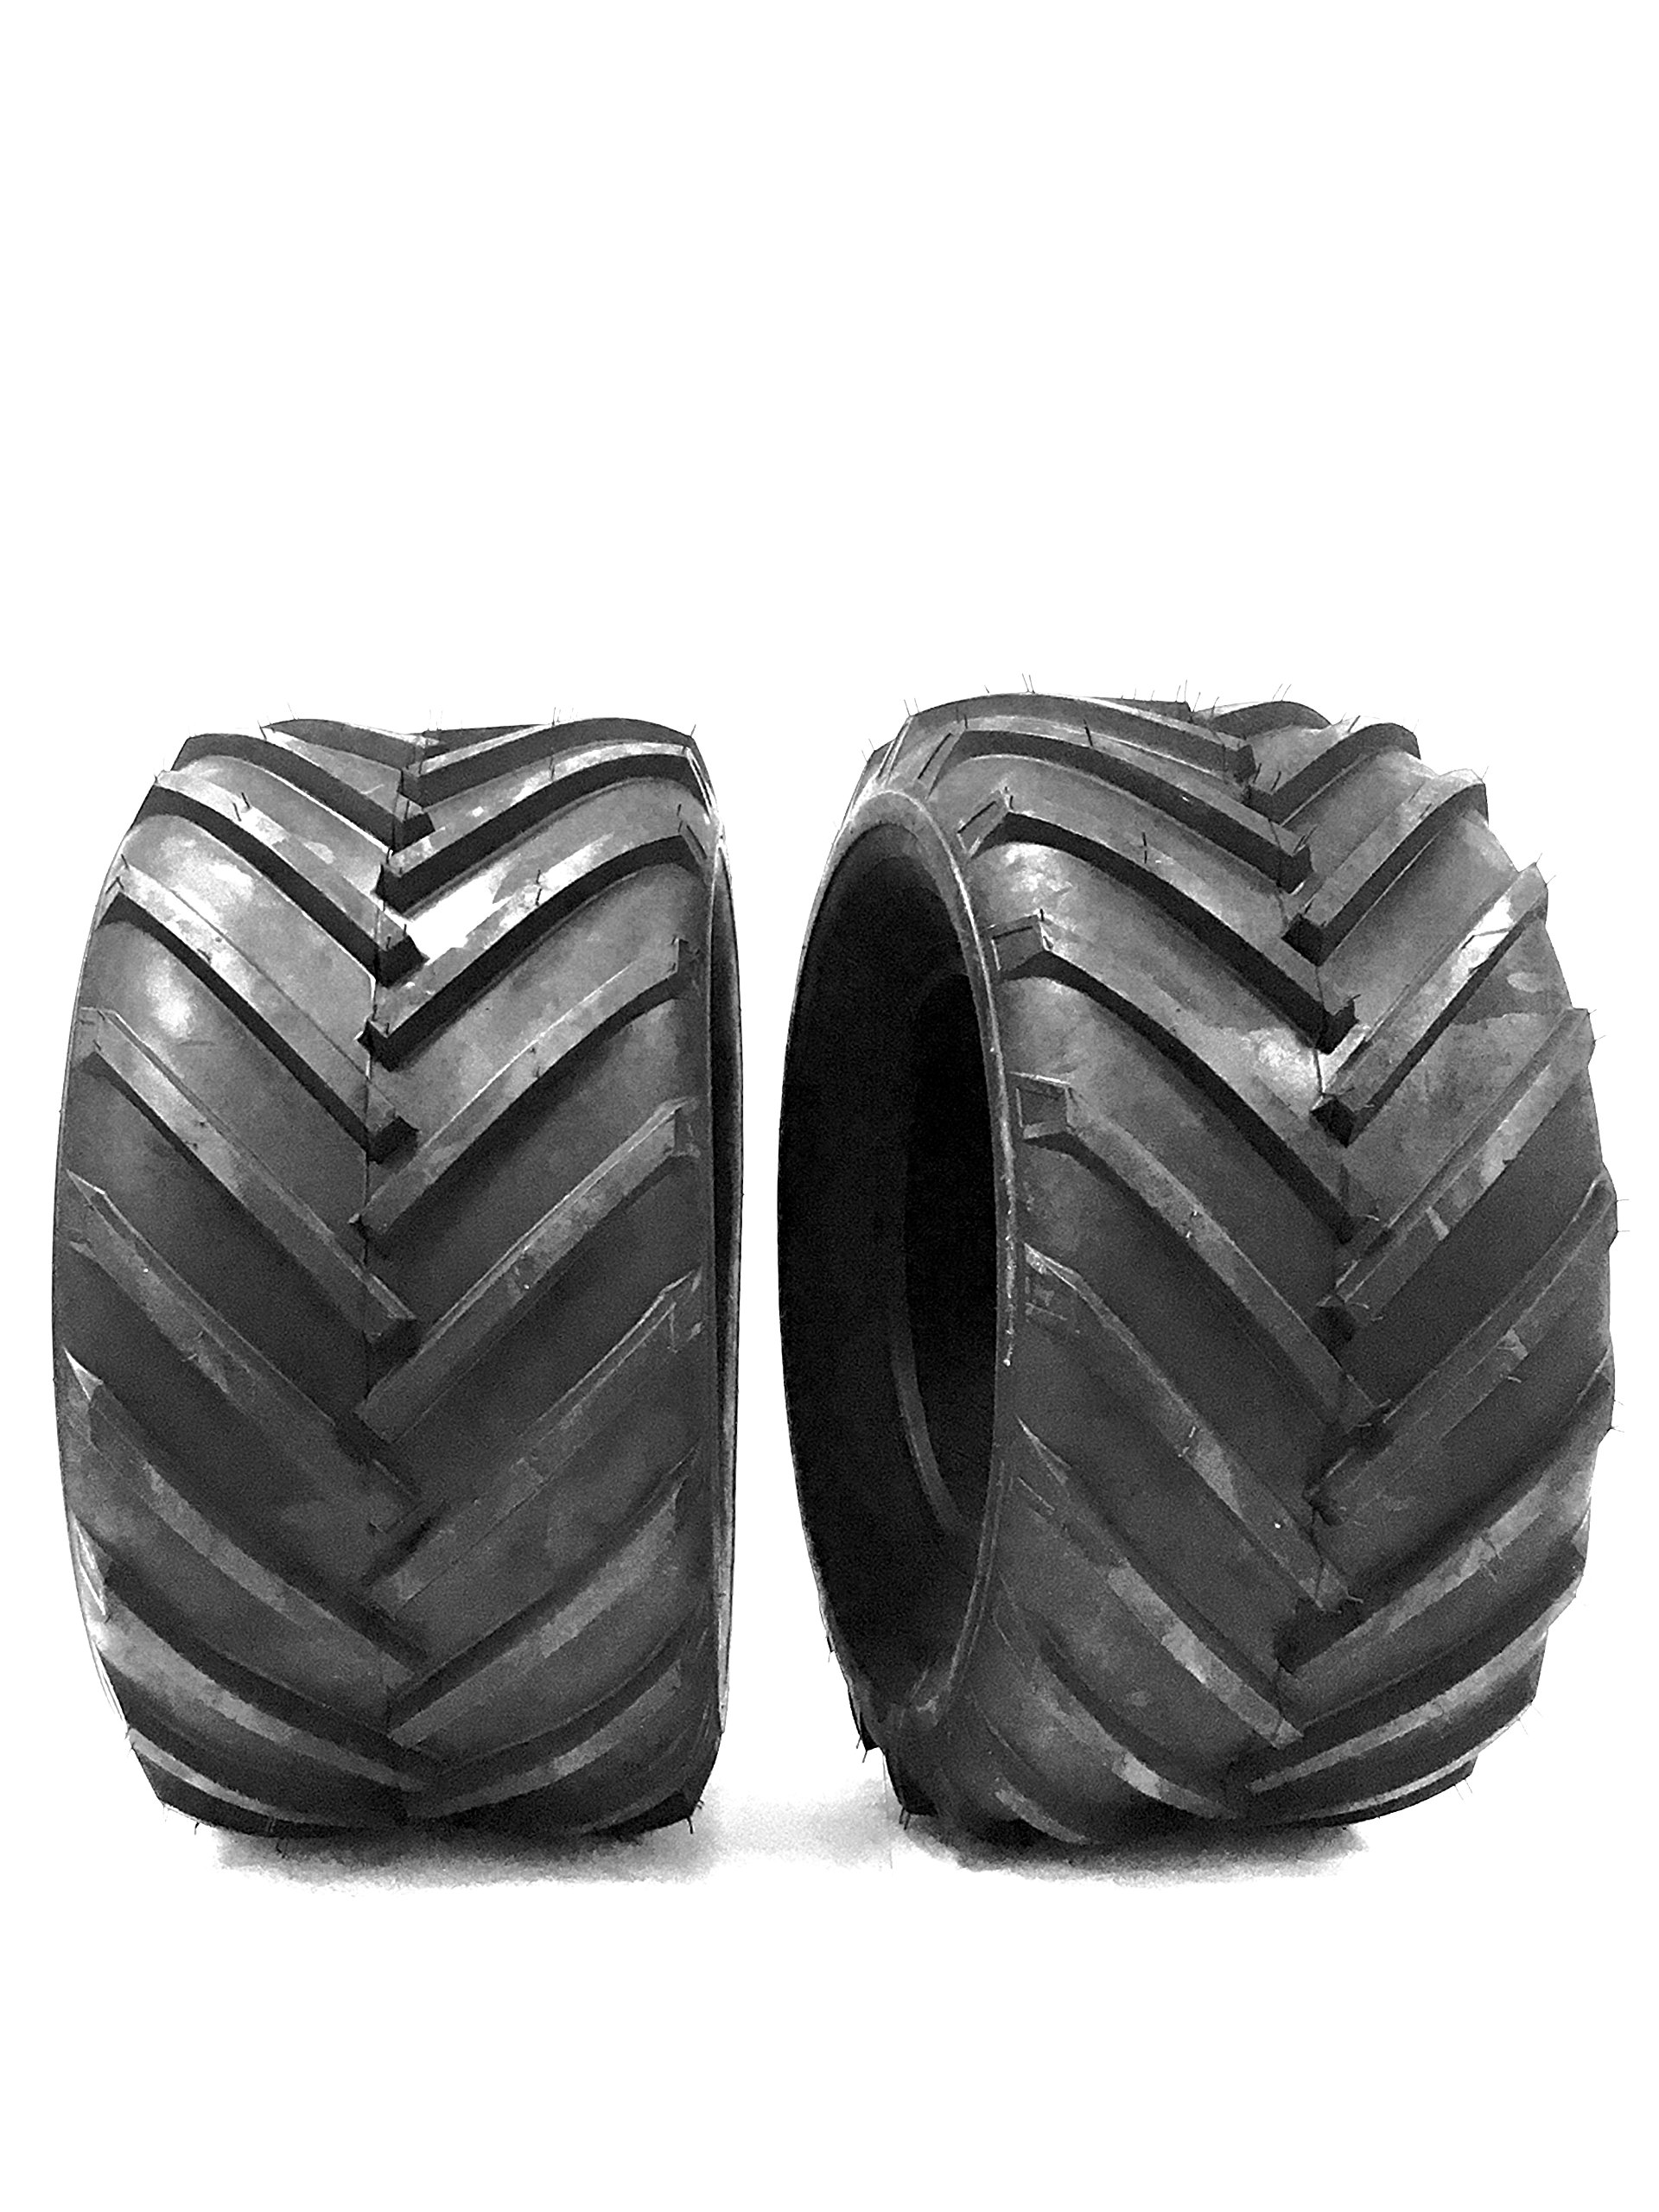 26X12.00-12 Field Master Tractor Lug Tires WITH TIRELINER FLAT PROF SYSTEM by Field Master (Image #1)